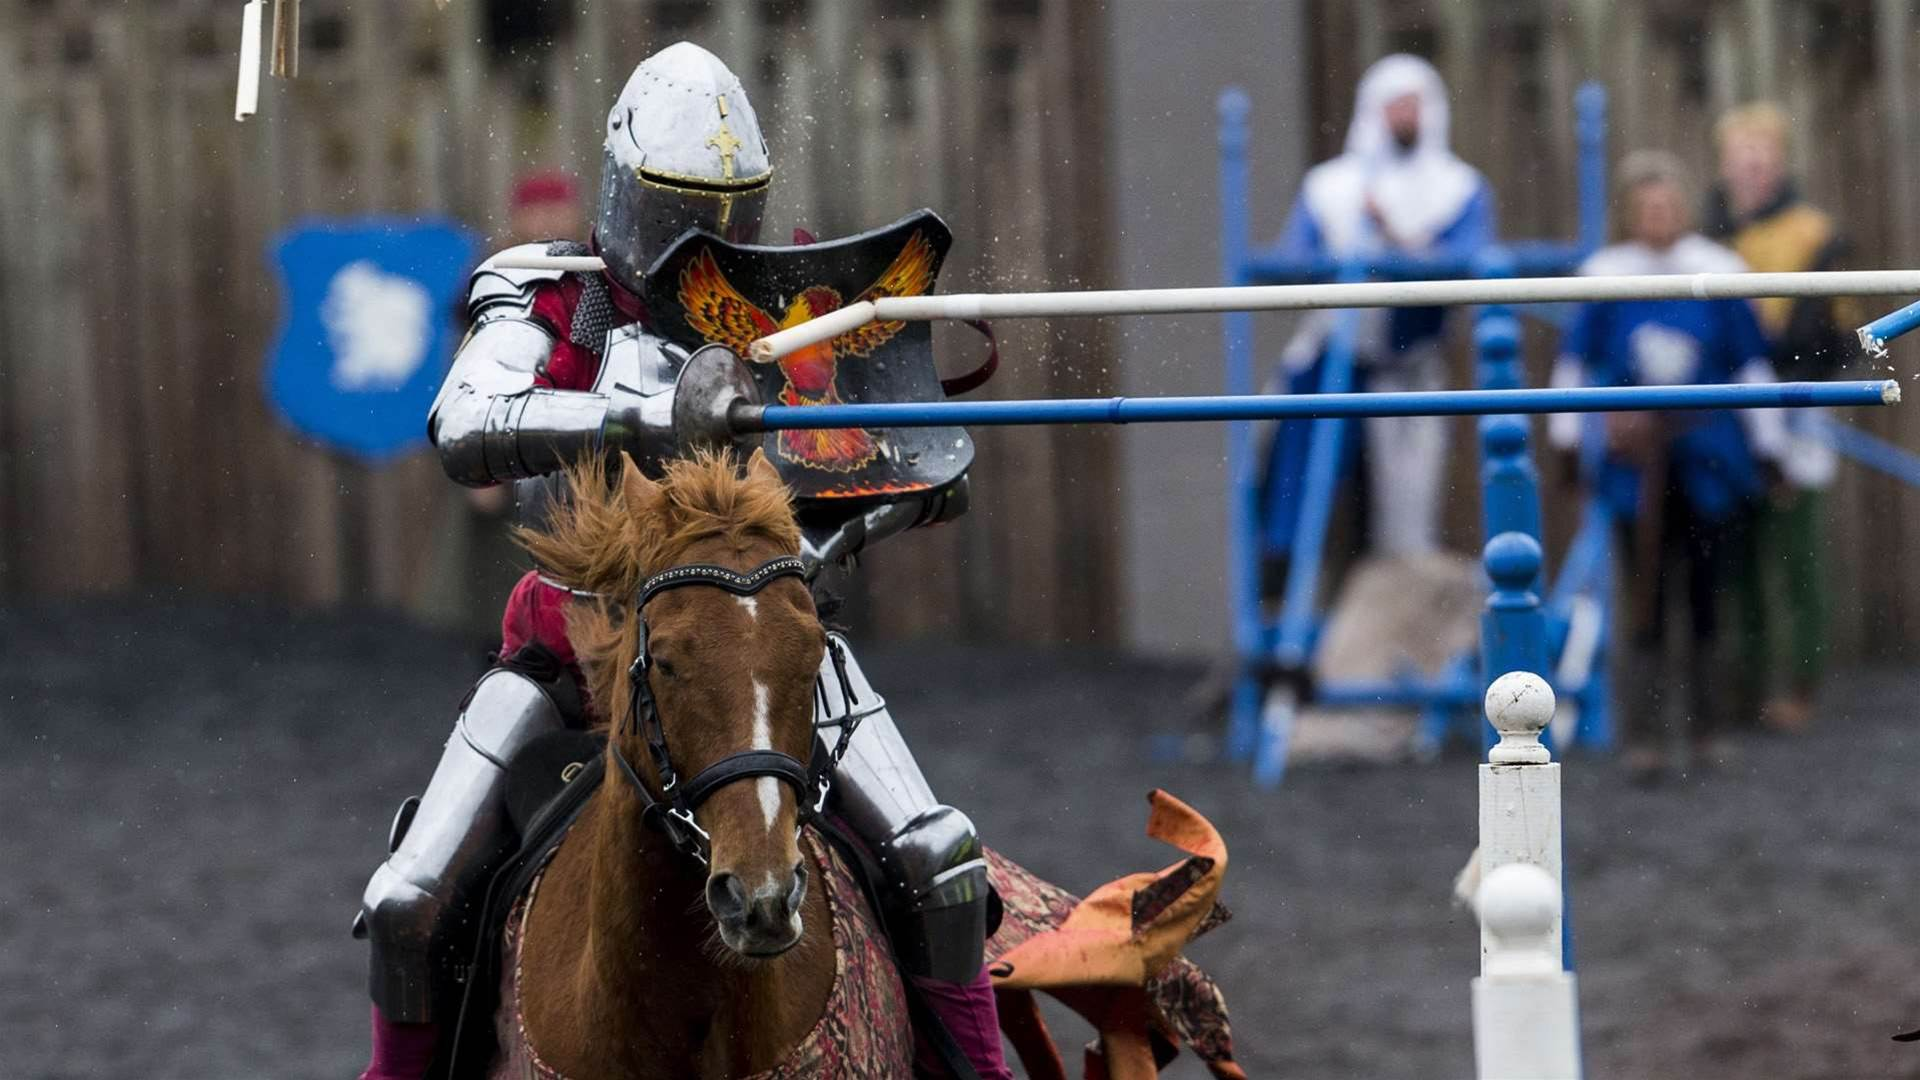 Jousting set to take over rugby league